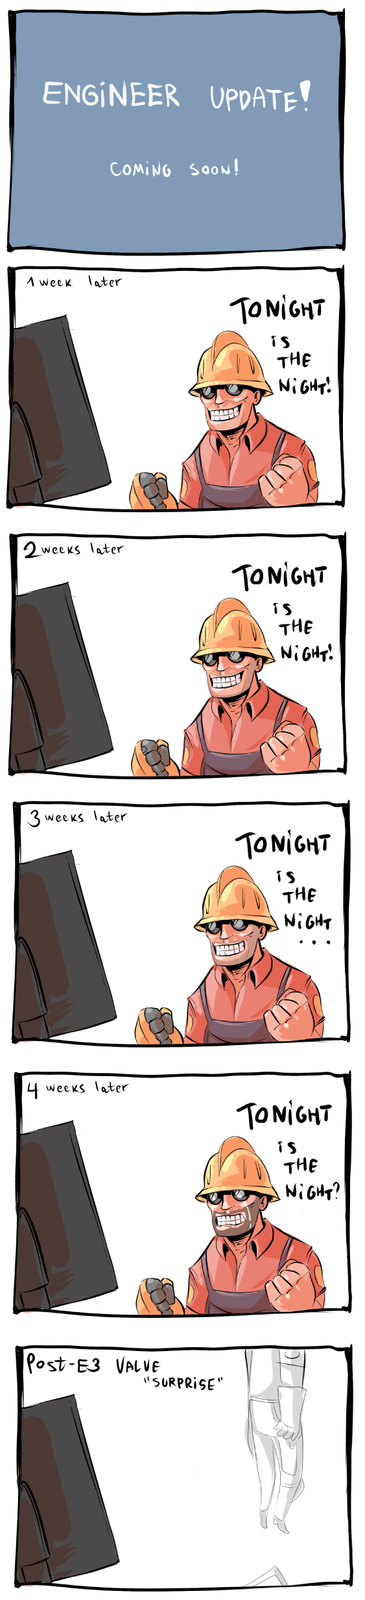 Valve_Time_by_ShwigityShwonShwei.png